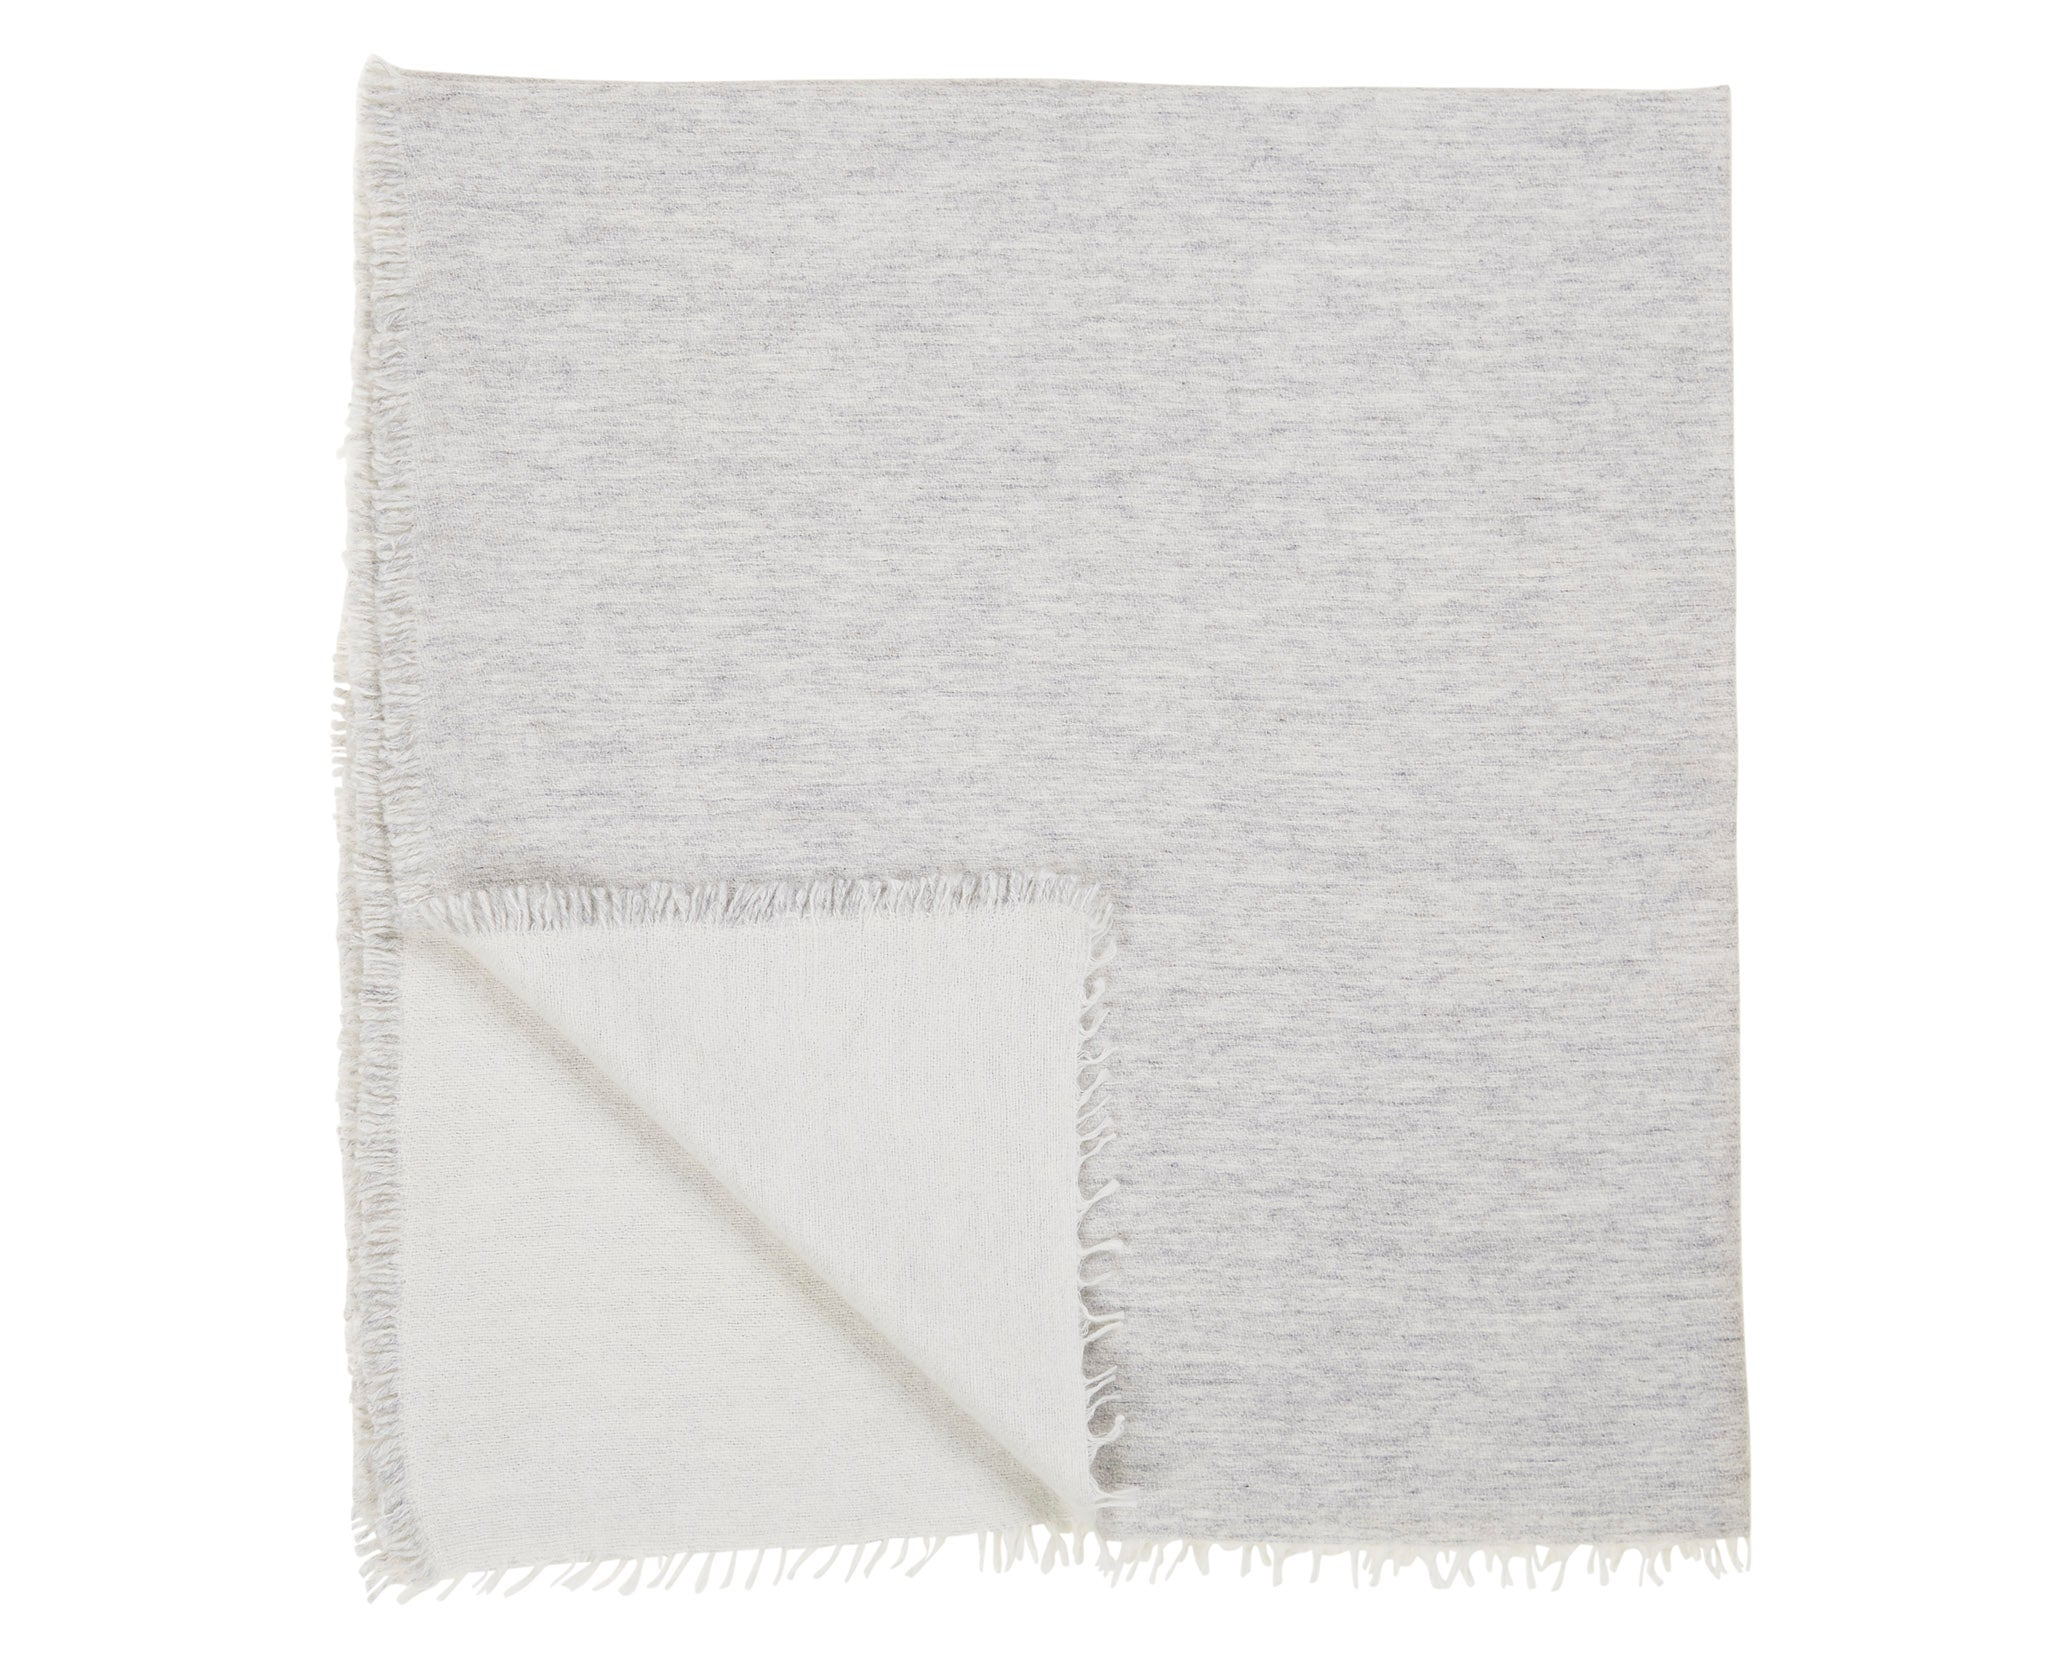 Denis Colomb Cashmere Baby Blanket